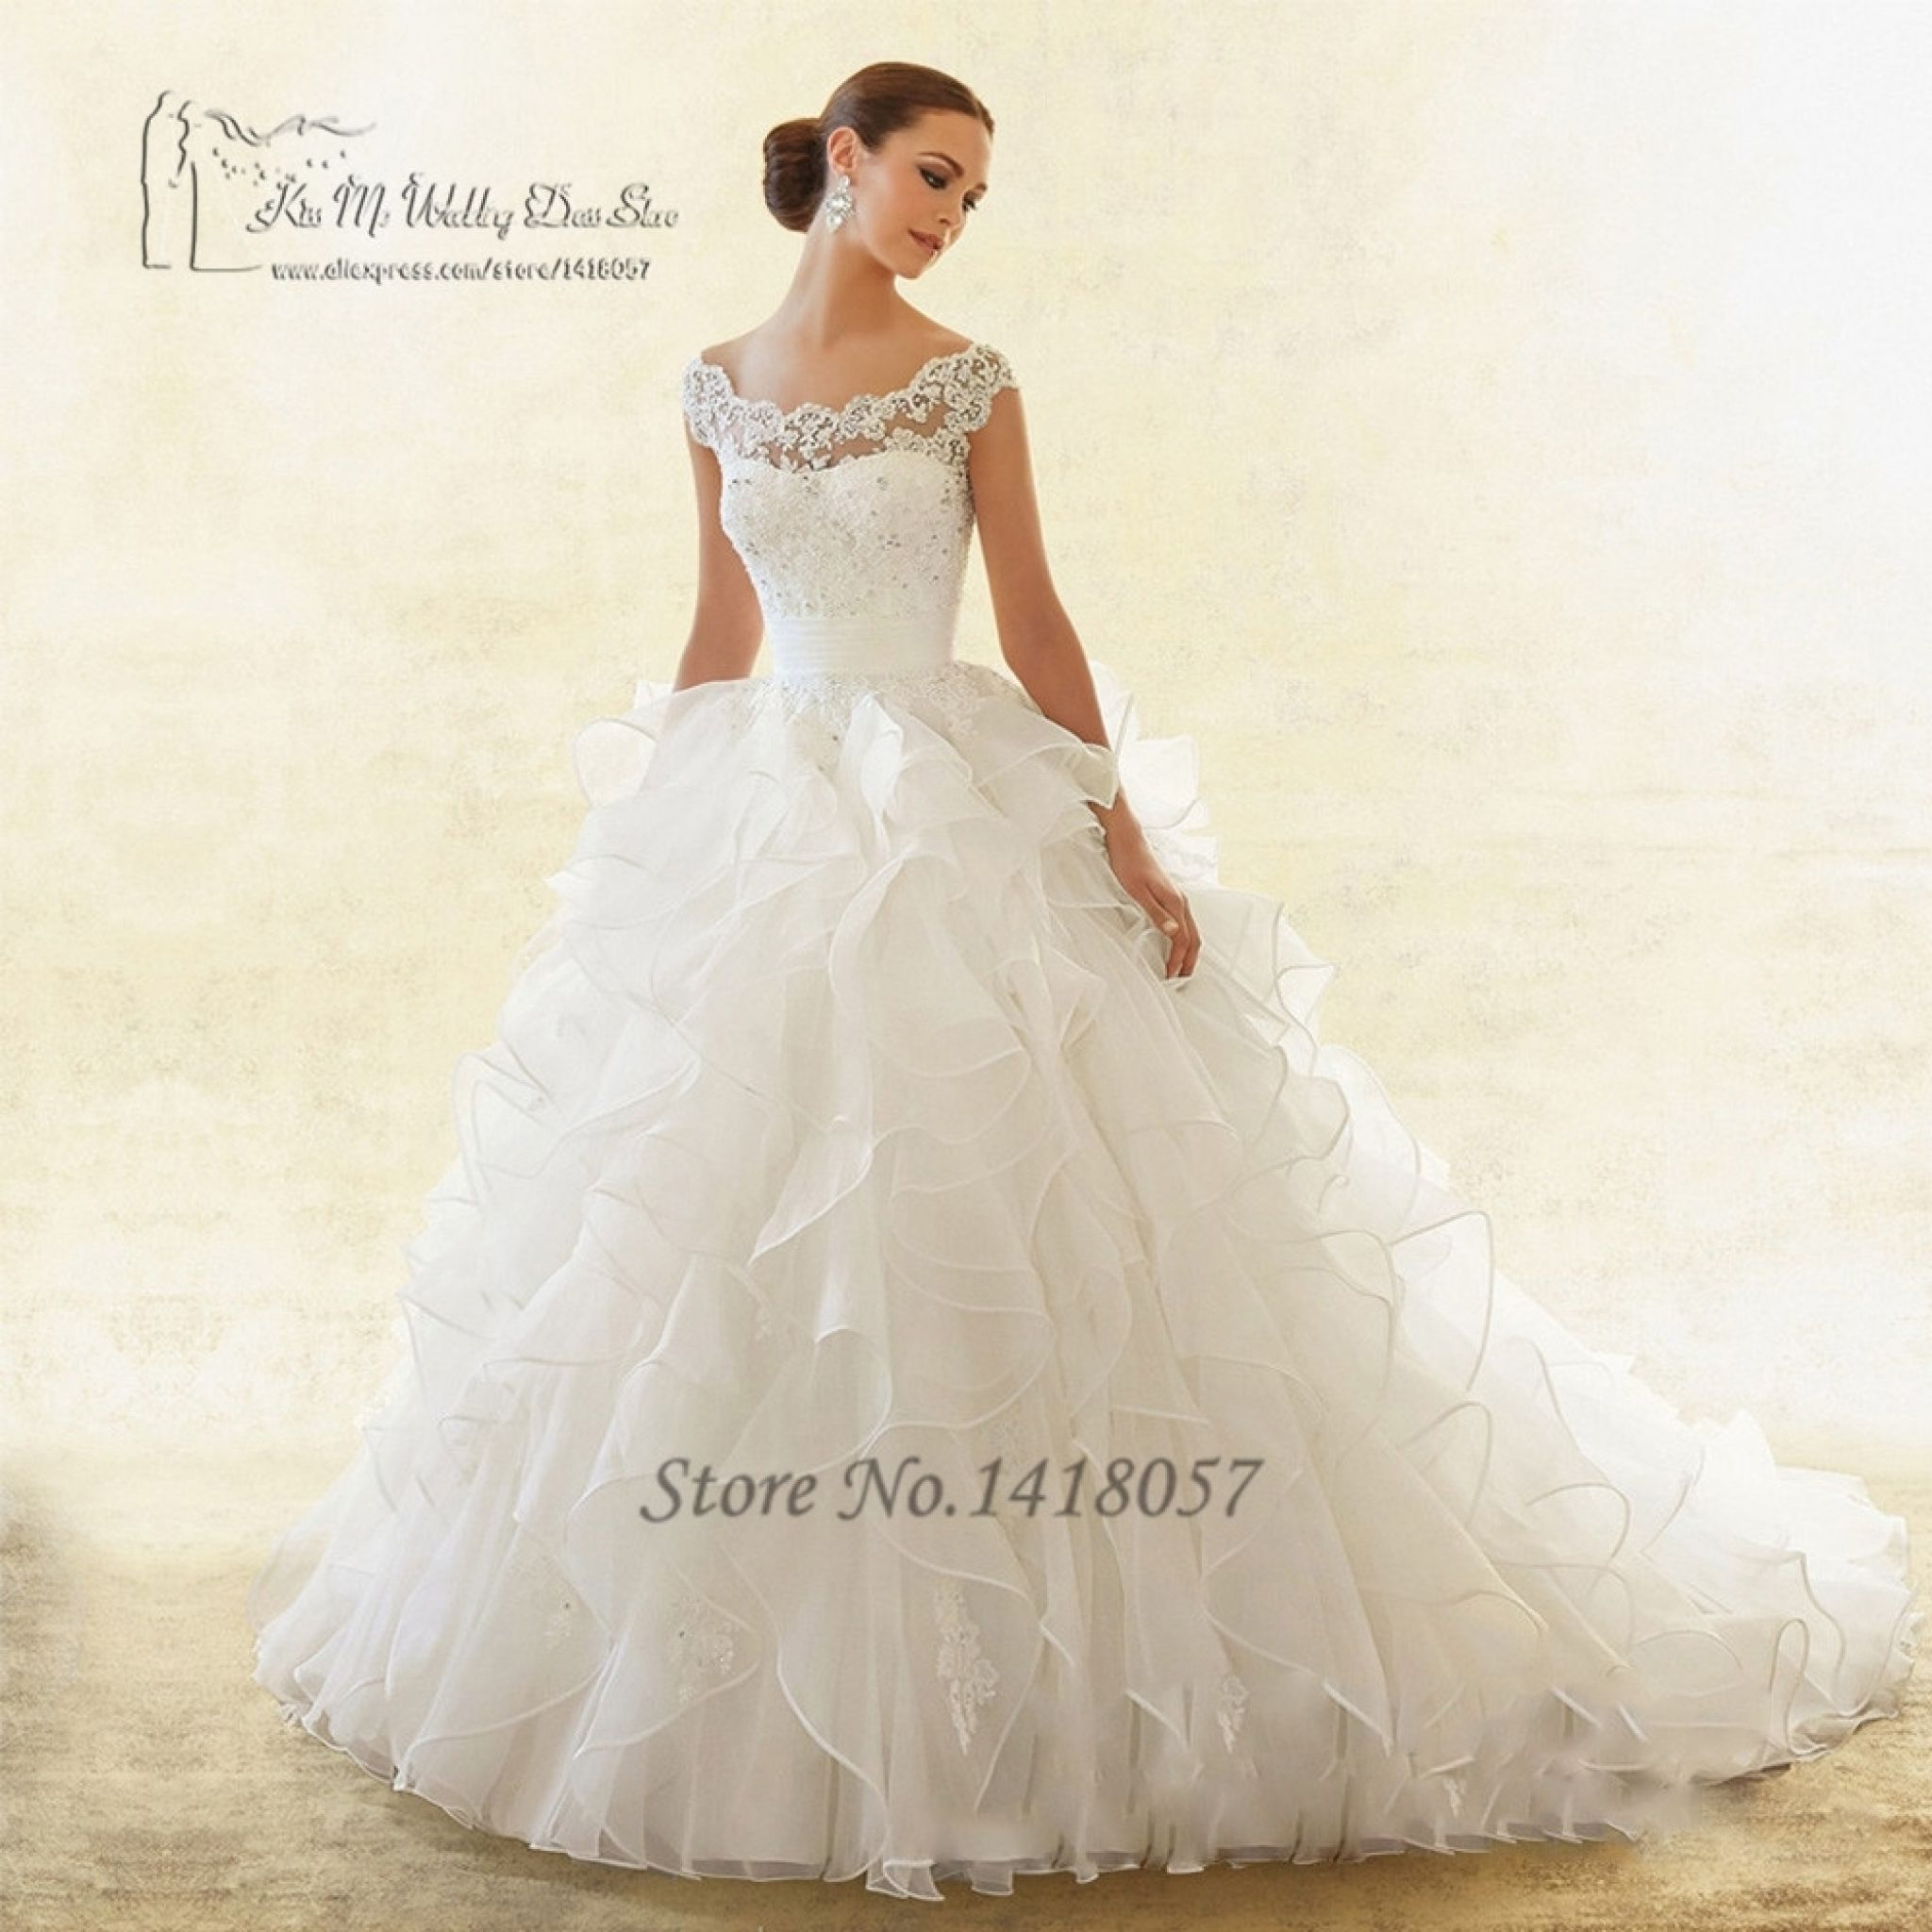 sell my wedding dress to a store - cute dresses for a wedding Check ...